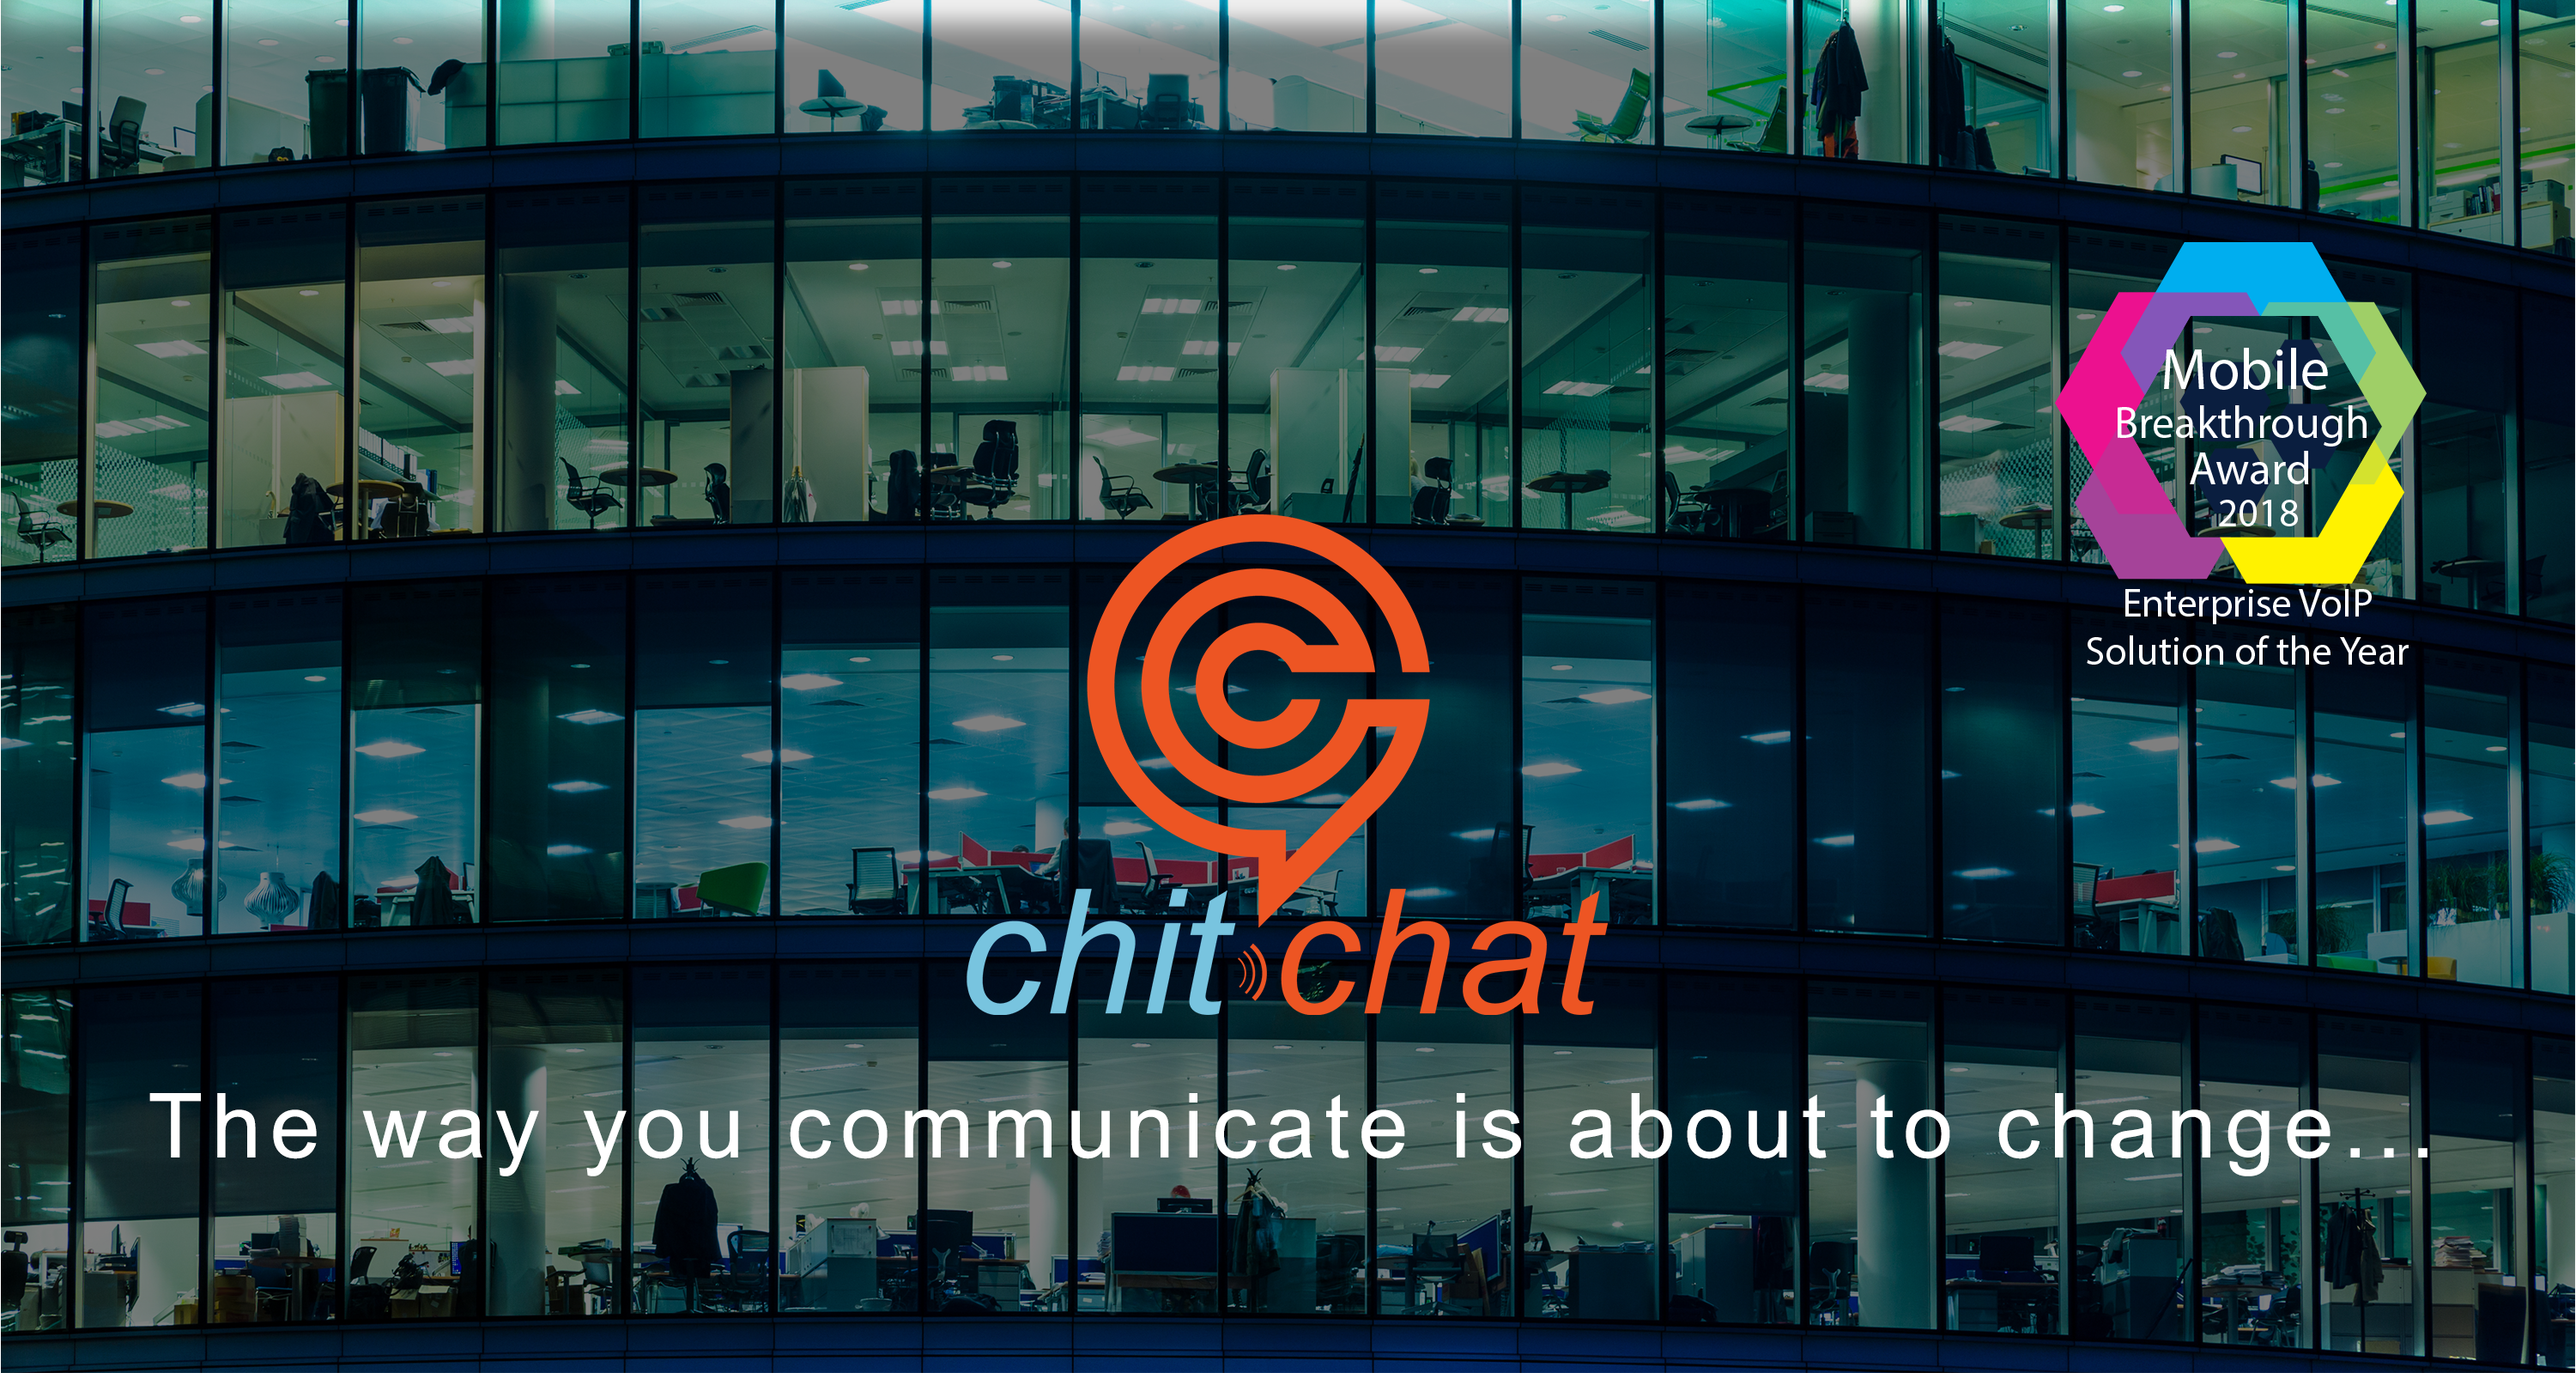 chitchat Speech Enabled VoIP website image with mobile award.png